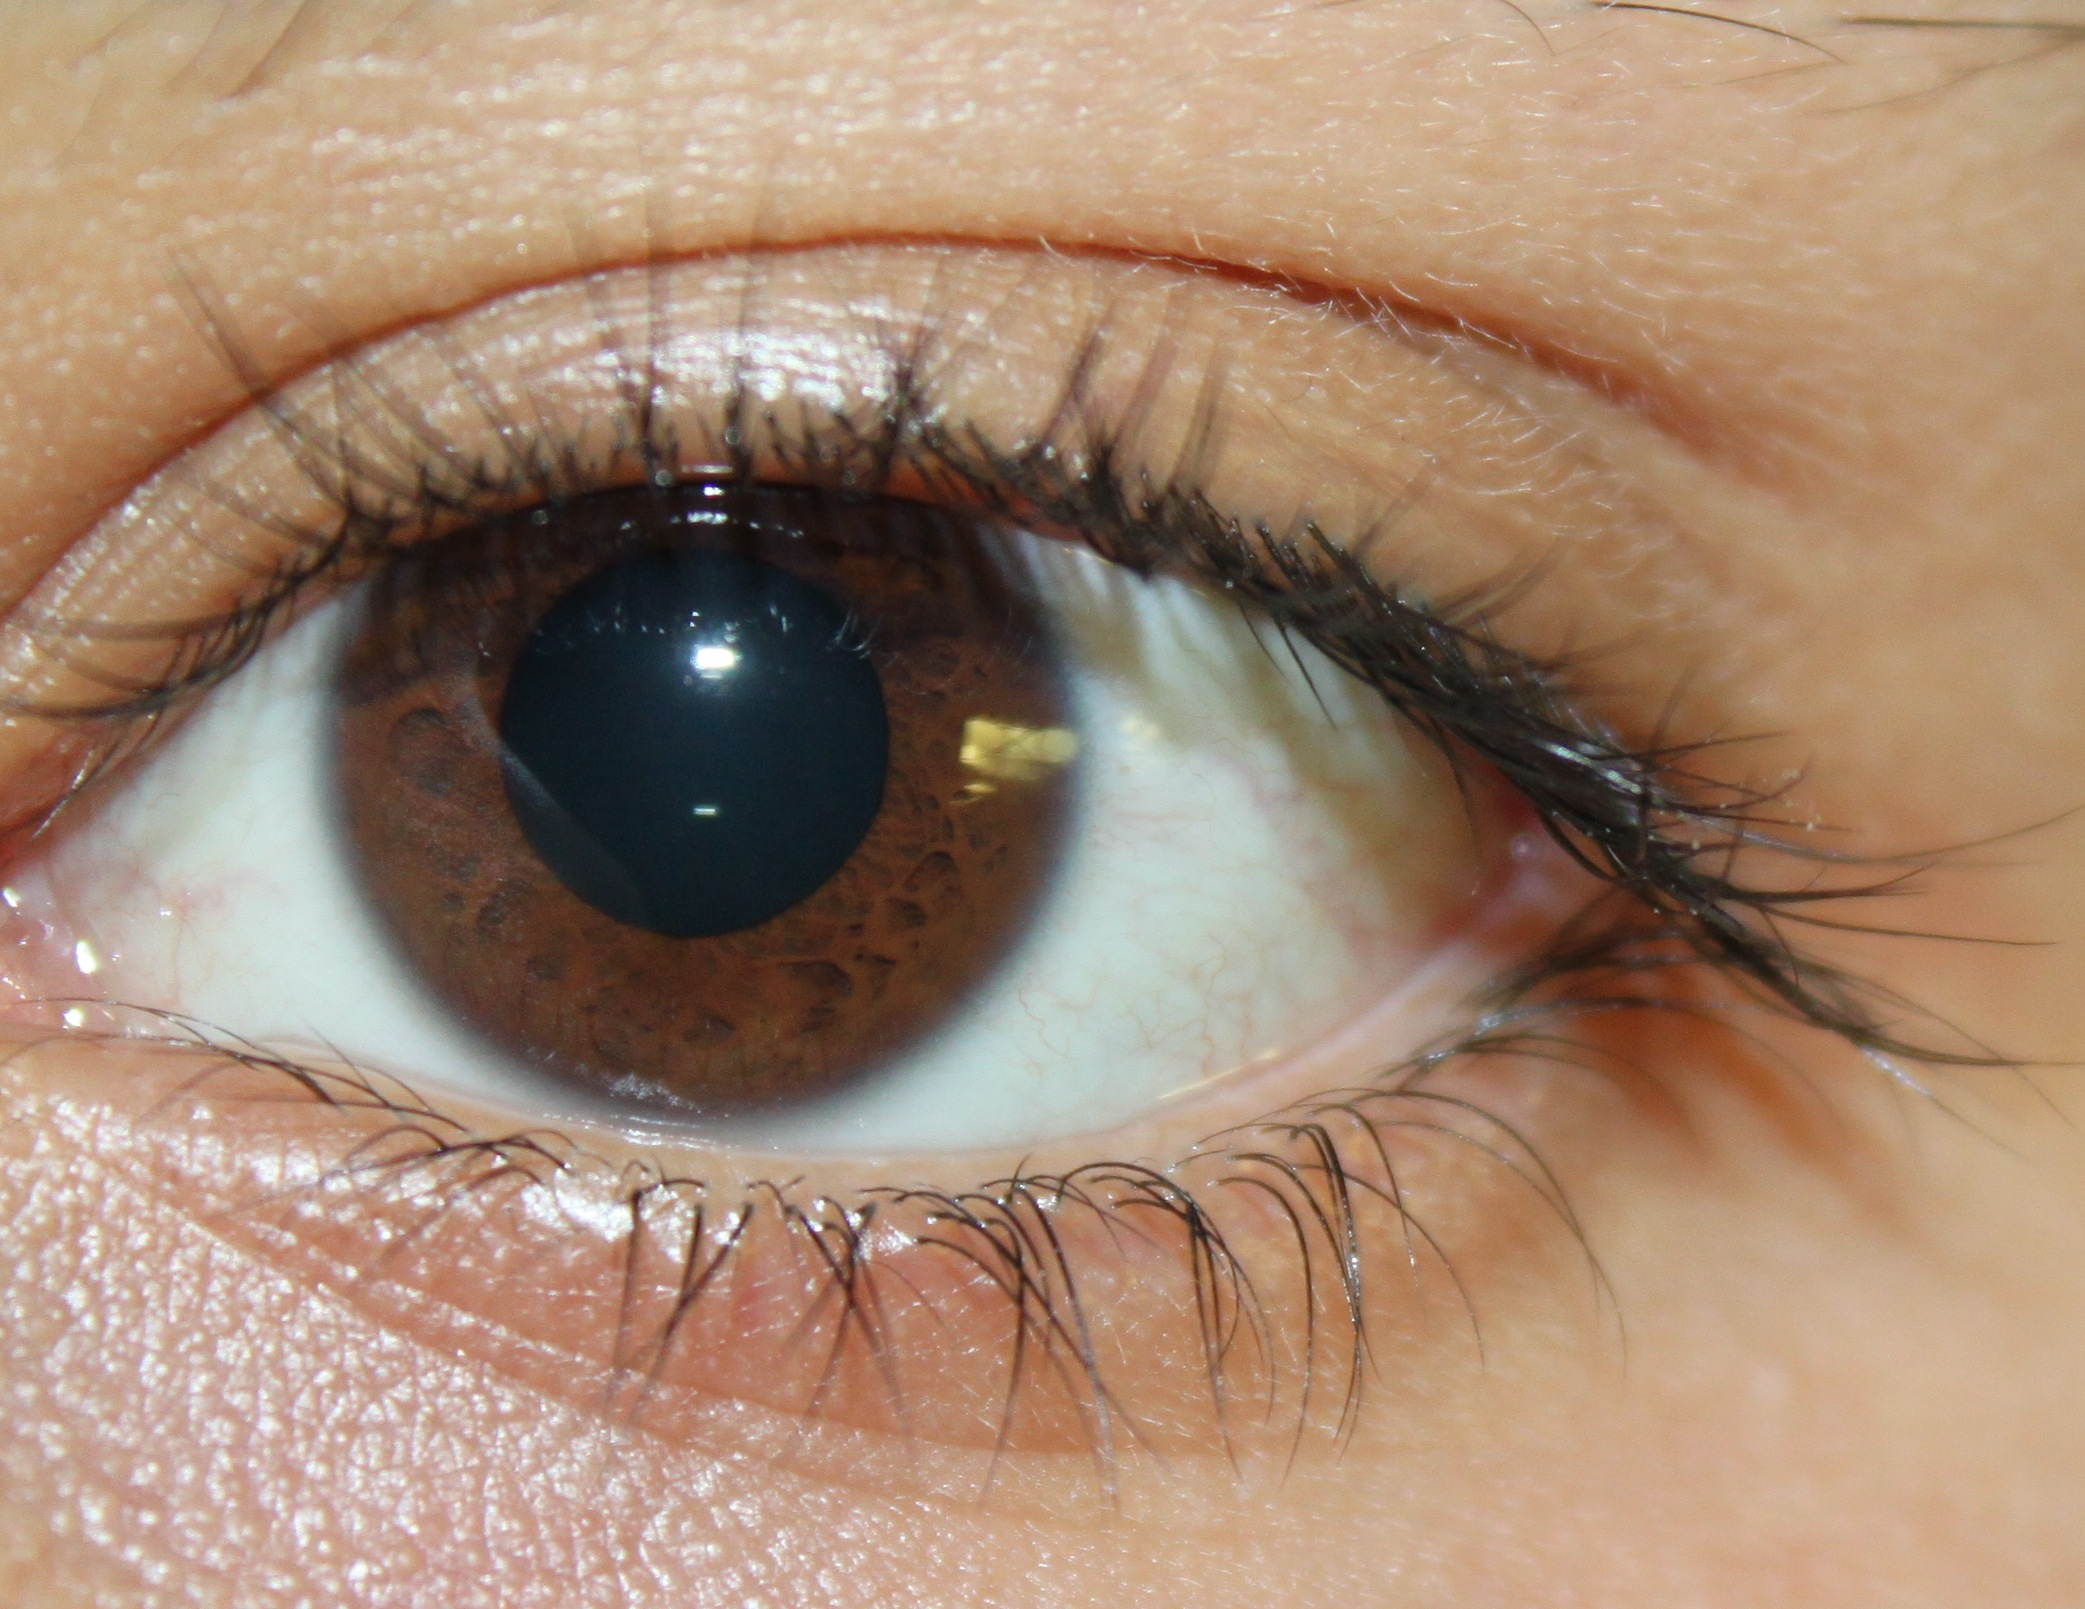 a year of natural health & beauty tip #4: quick morning eye massage